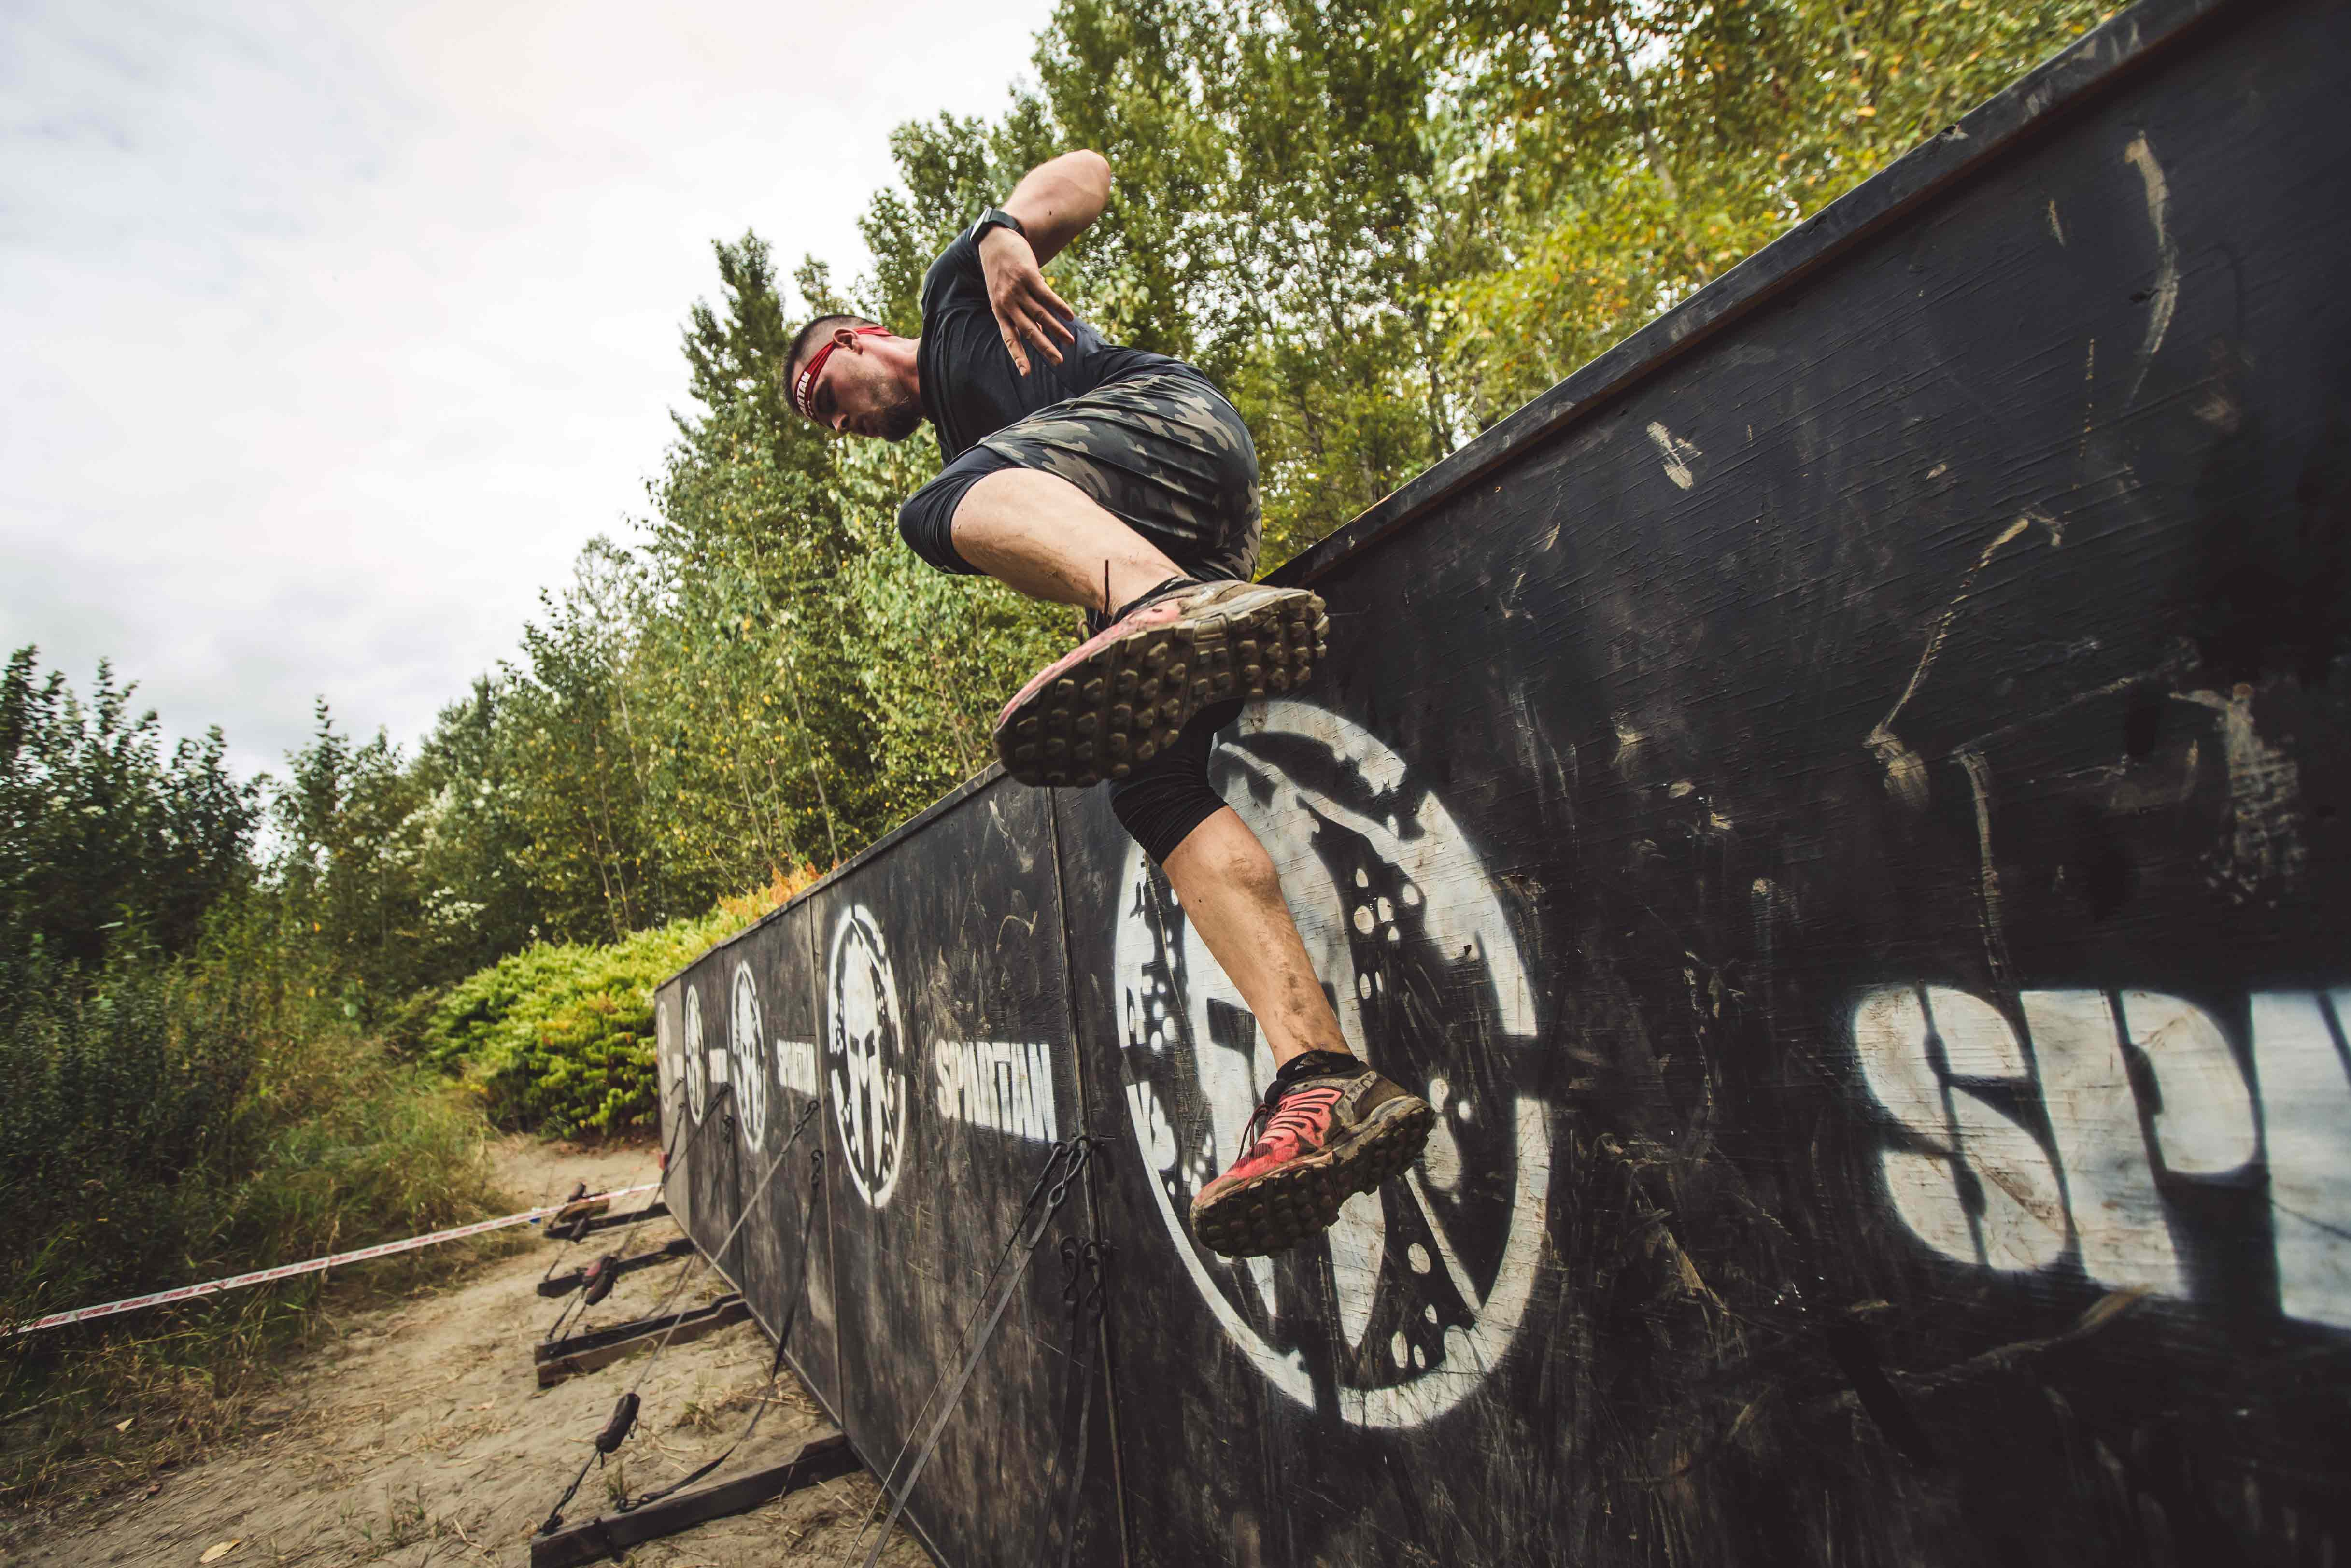 A Spartan racer clears an obstacle wall during a race safely after preparing with ankle stability exercises.